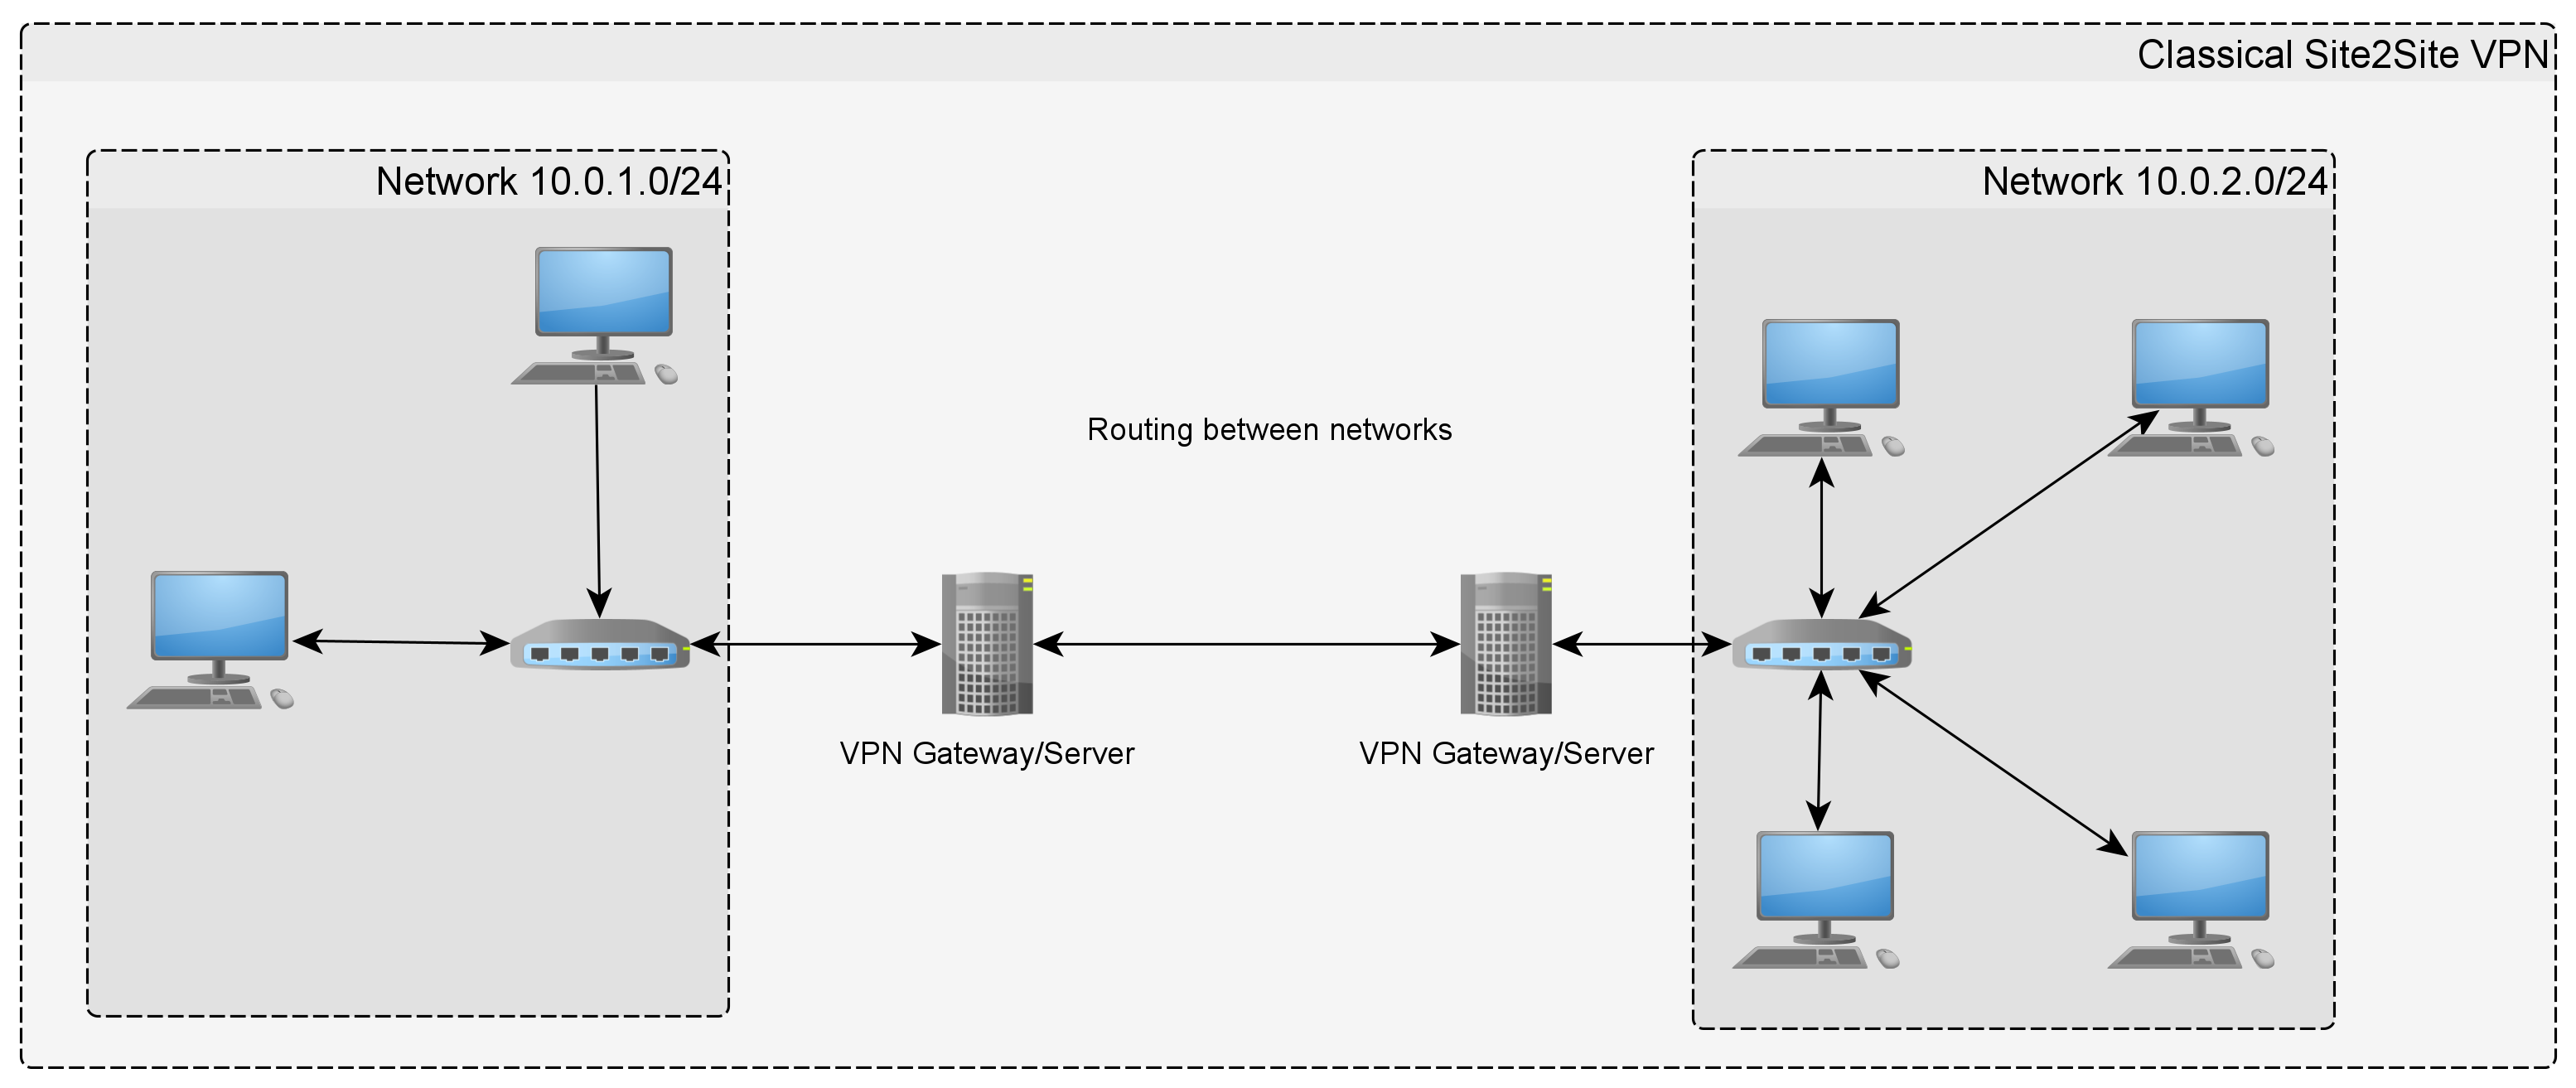 Figure 2: Classical Site2Site VPN (CC BY-ND 4.0)